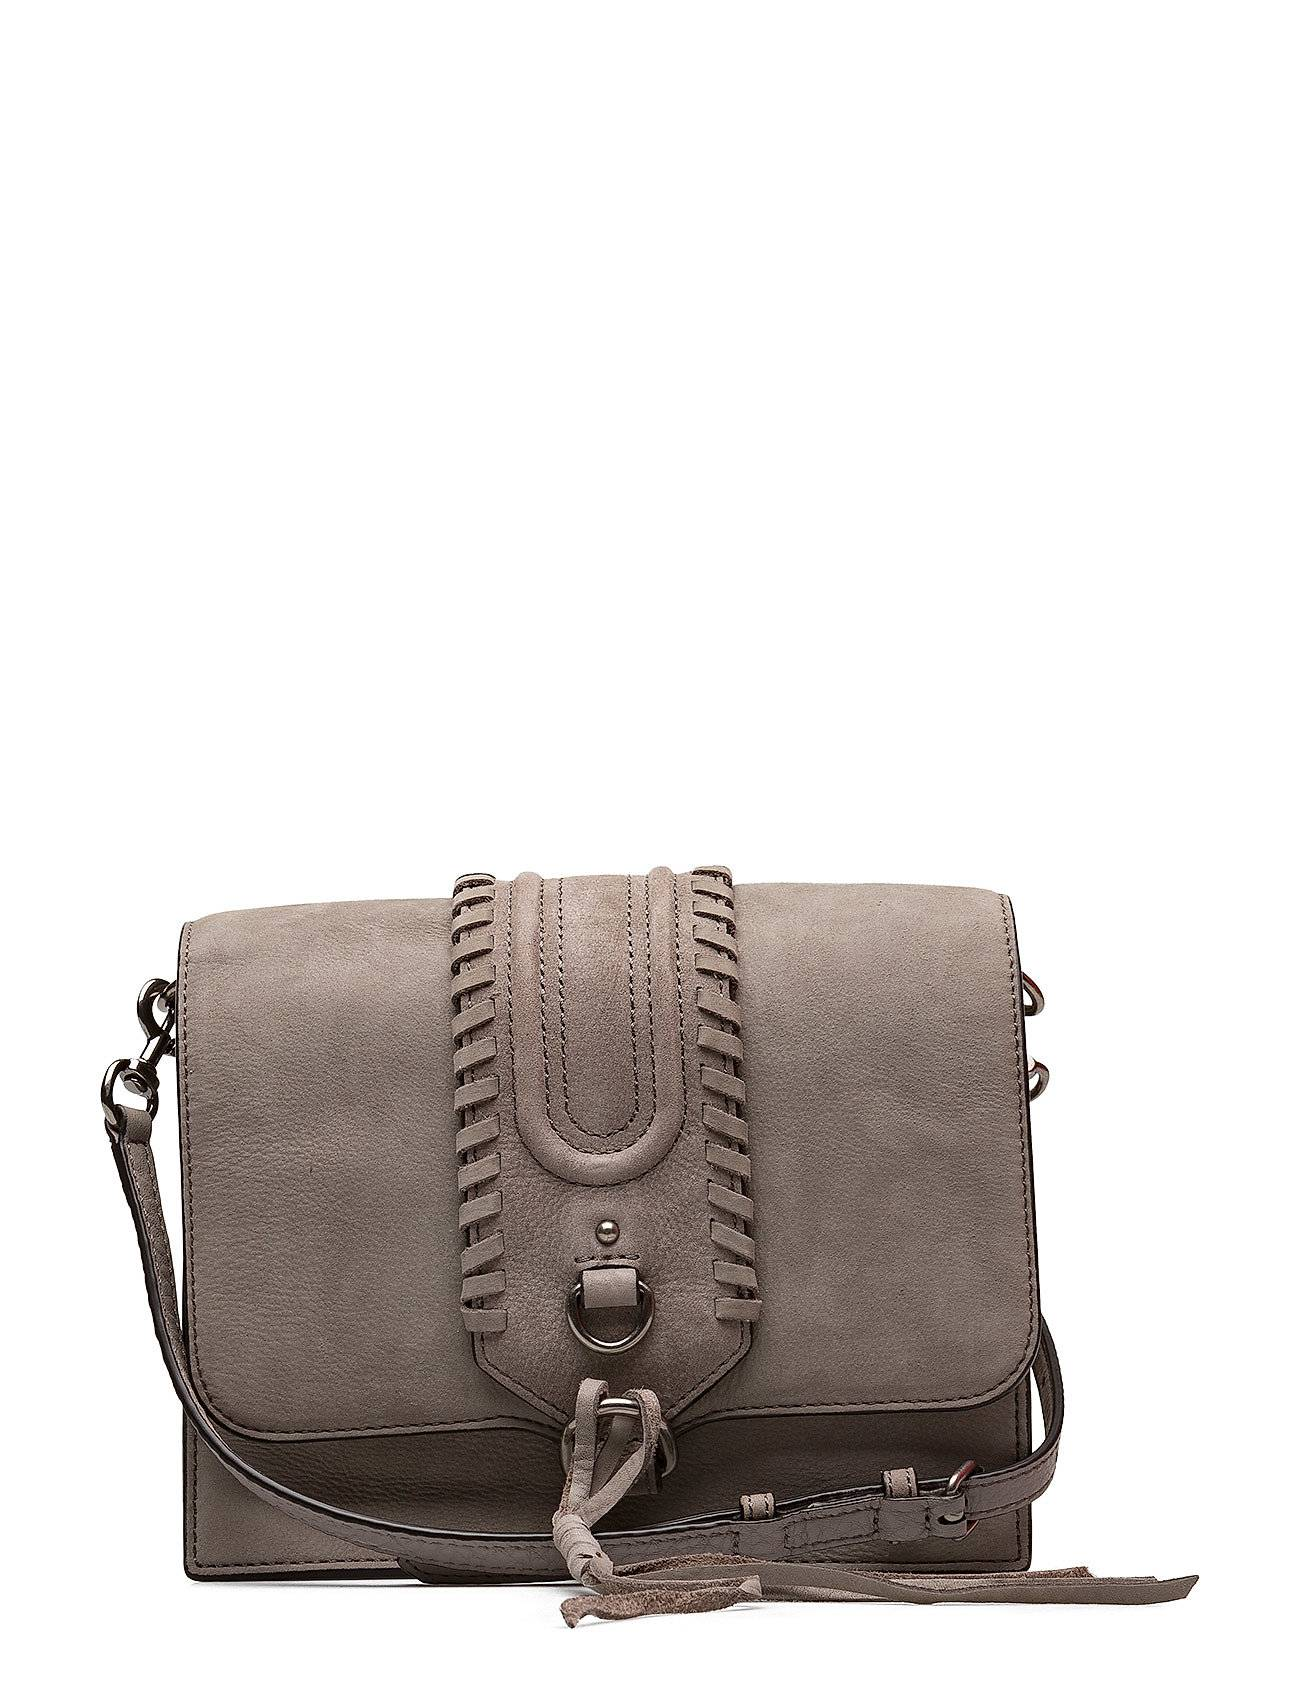 Rebecca Minkoff Paige Gusseted Crossbody